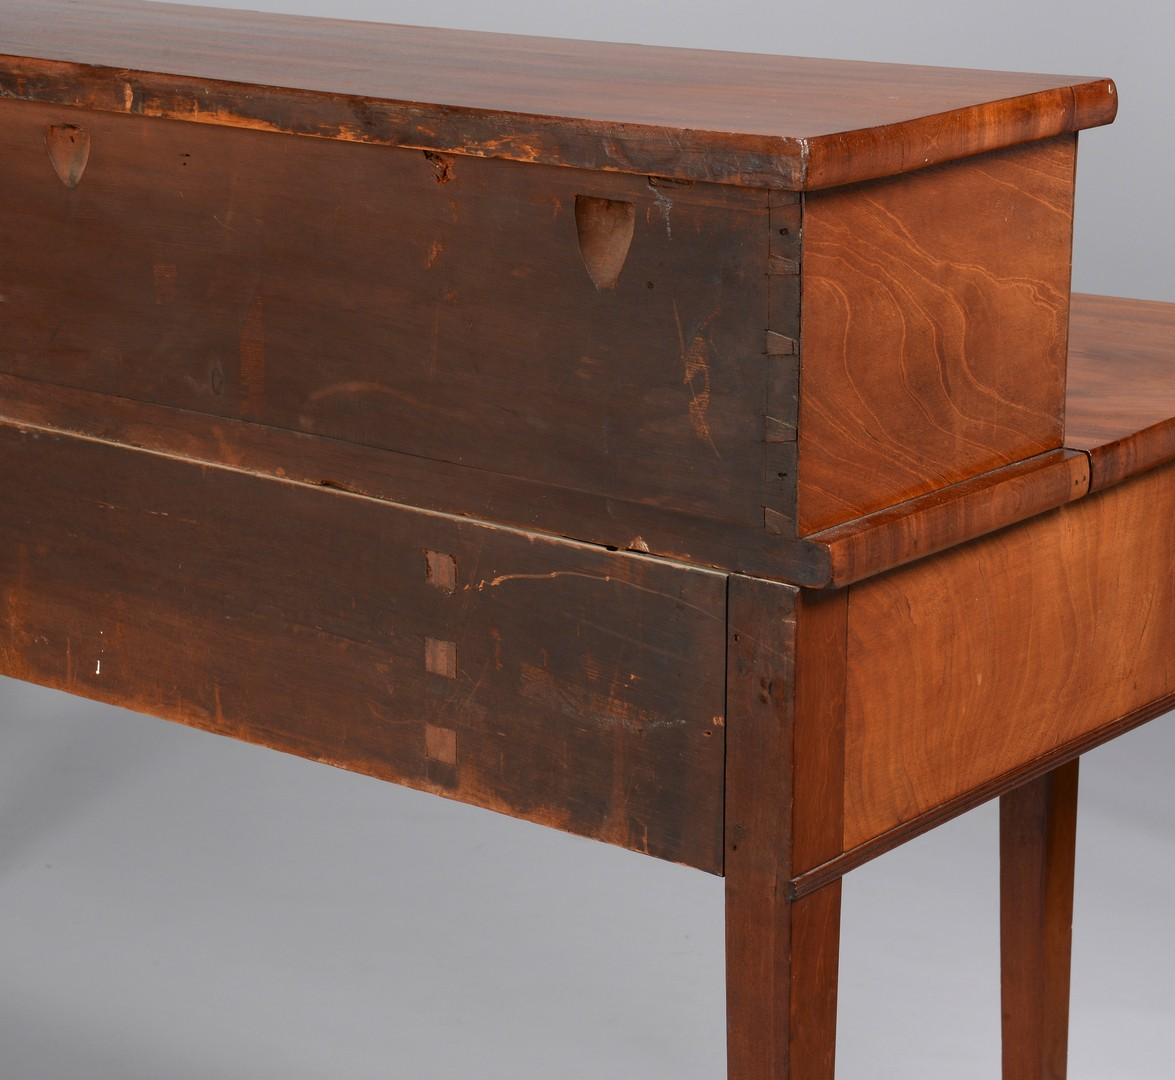 Lot 276: English Inlaid Sideboard with Tambour doors